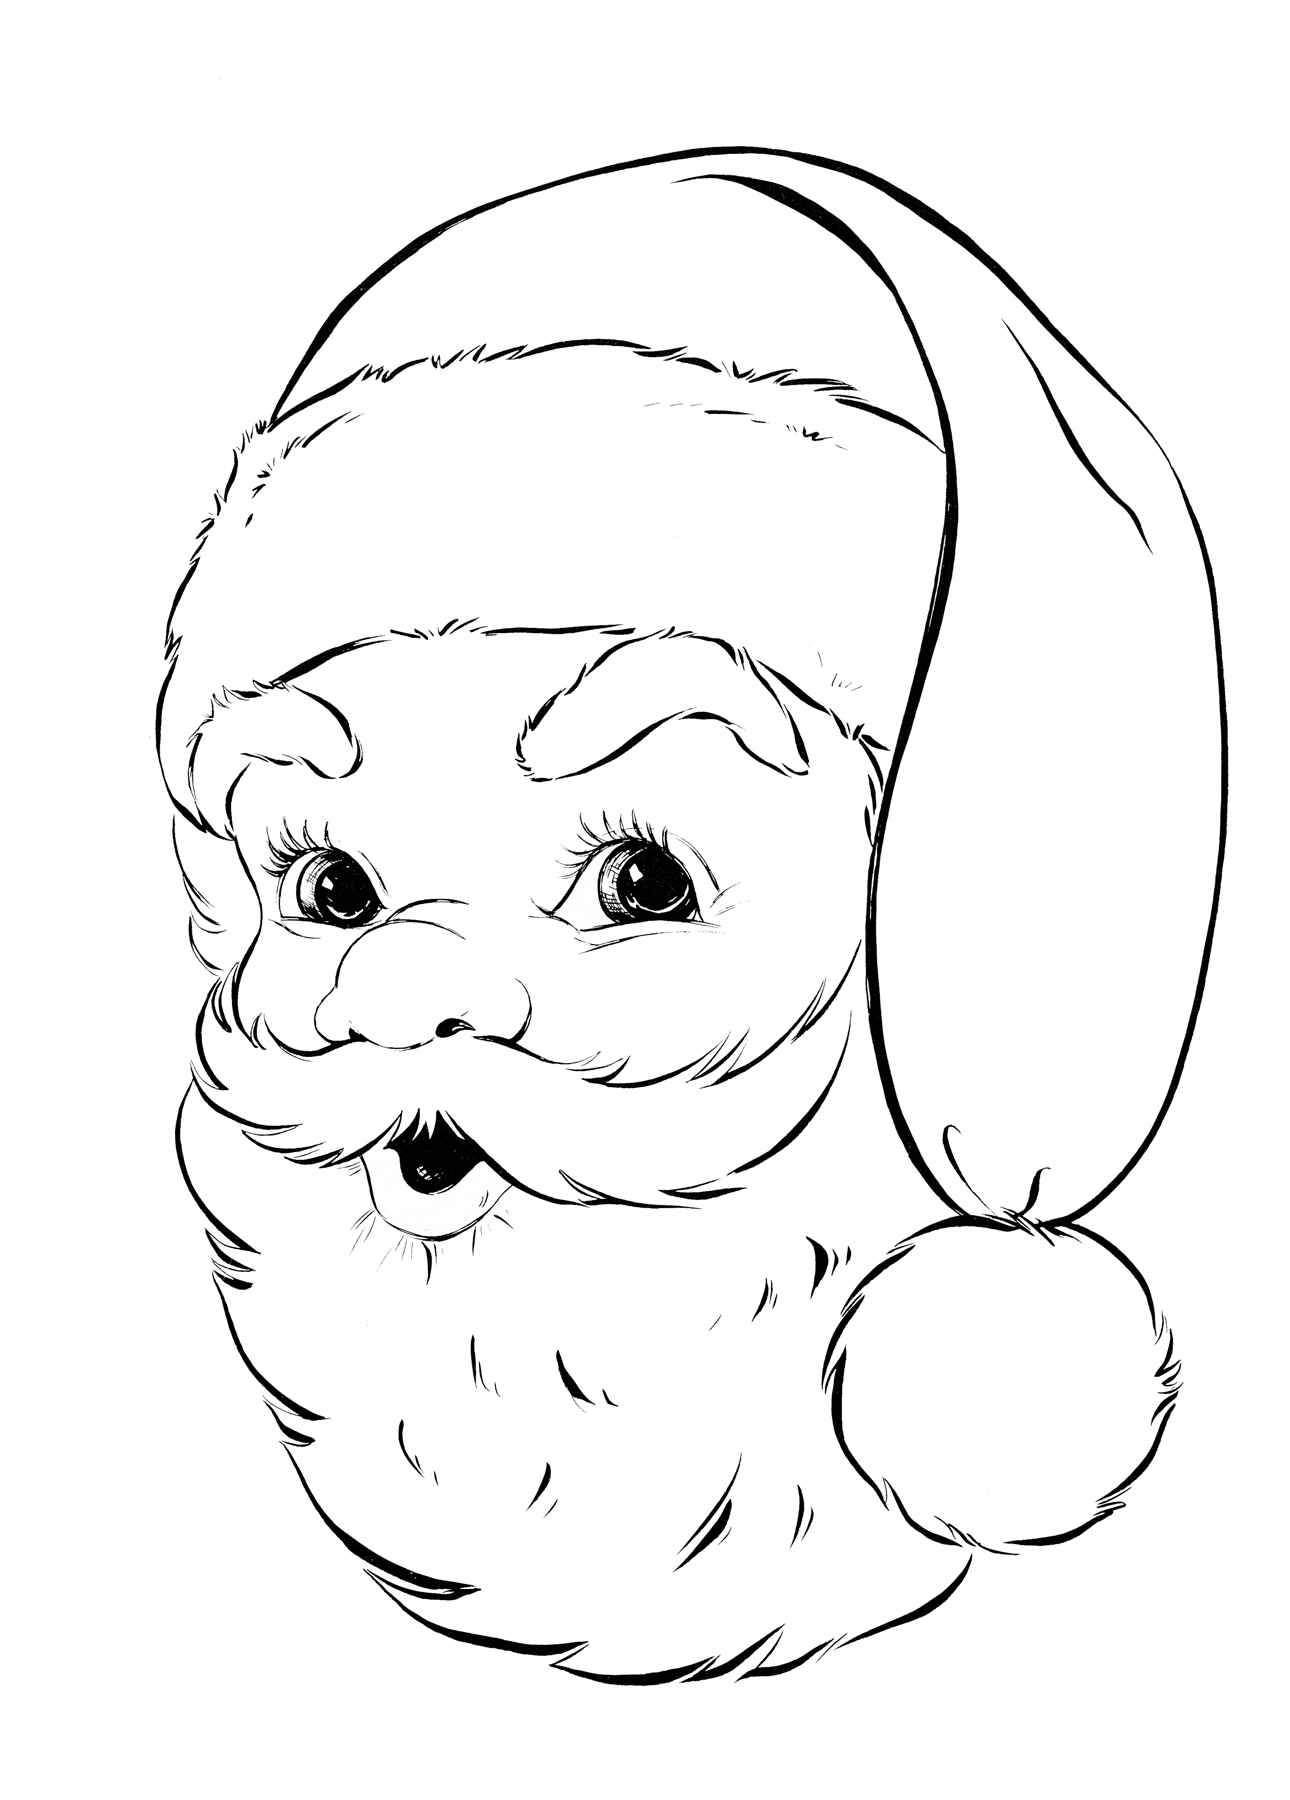 coloring pages for 8 year olds coloring pages for 8 year old boys free download on coloring olds 8 pages year for